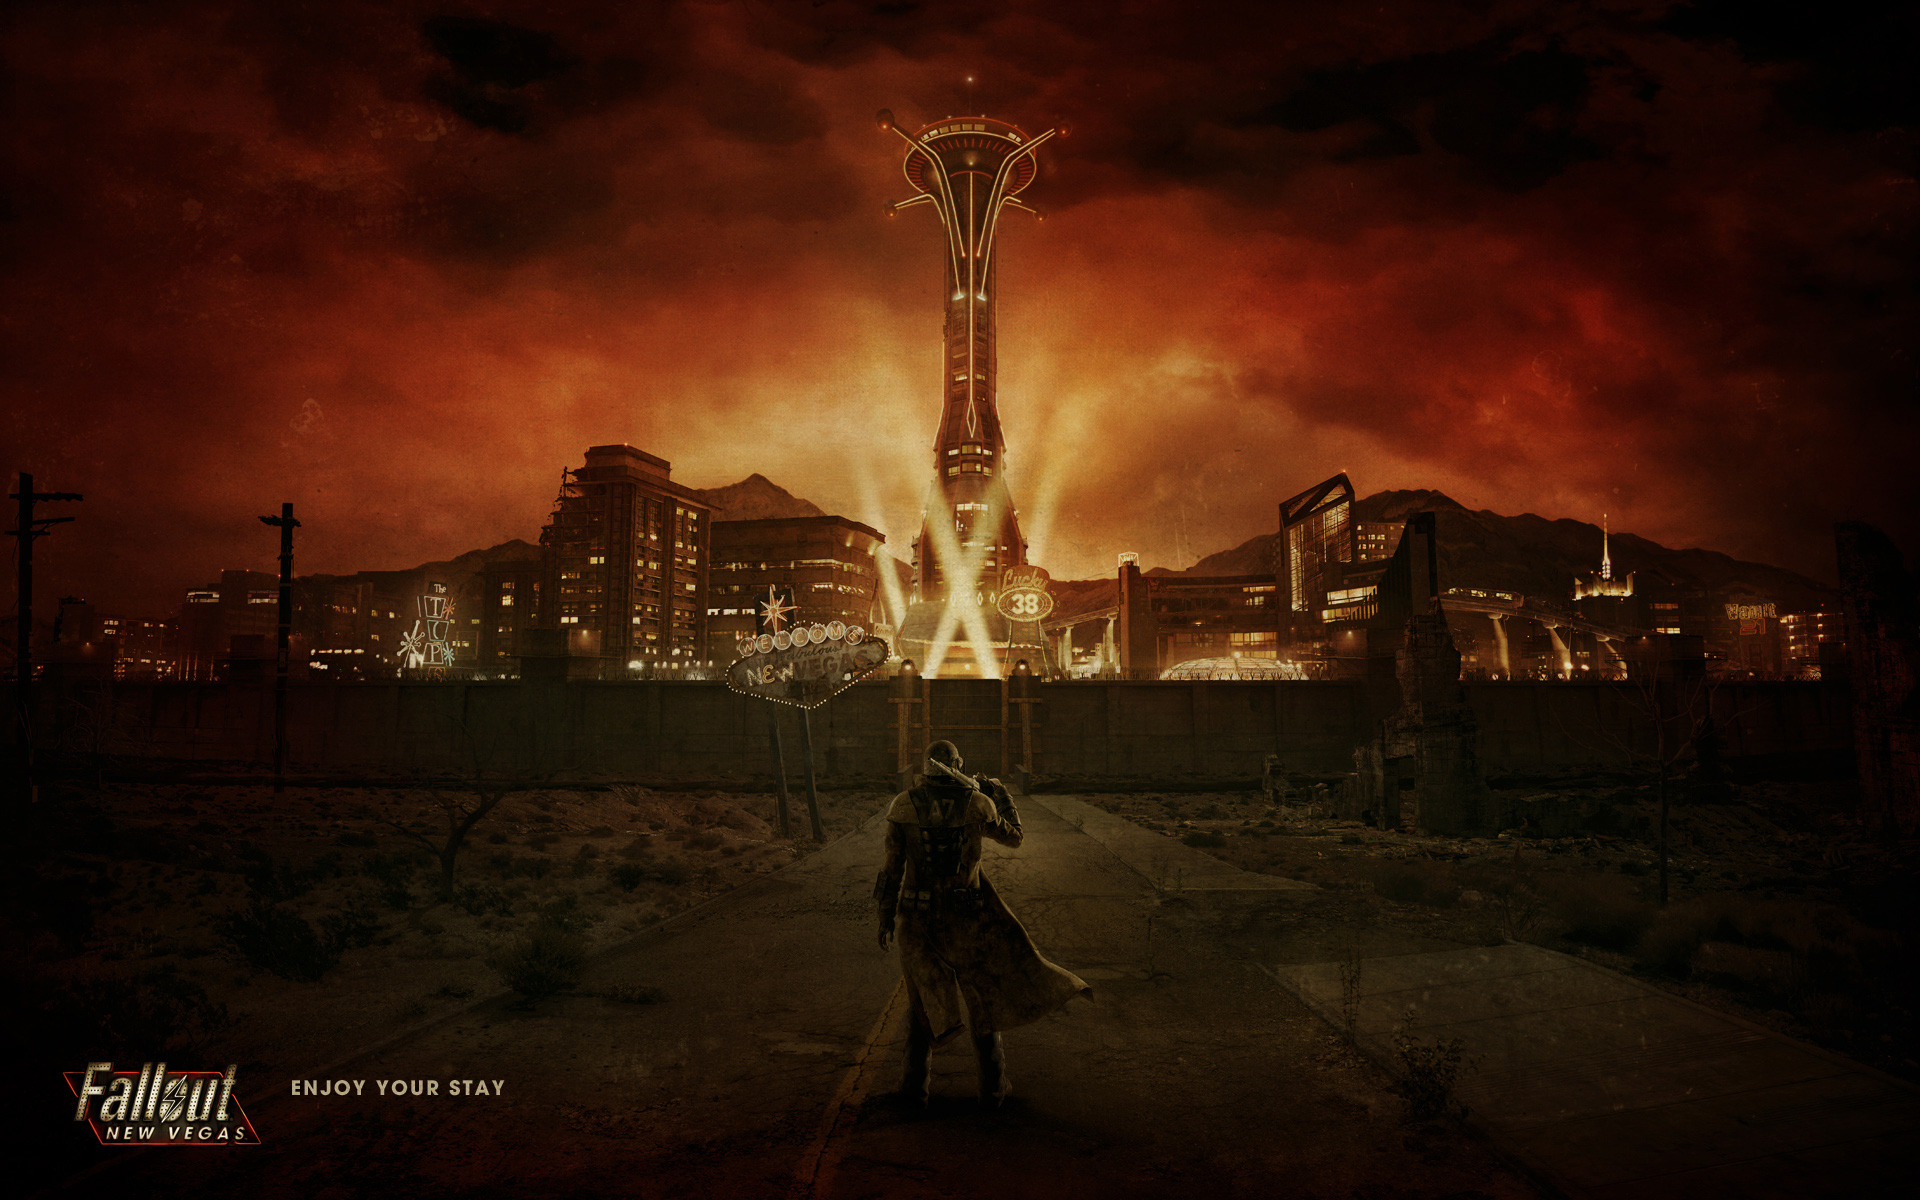 fallout-new-vegas-game-hd-wallpaper-1920x1200-6794.jpg